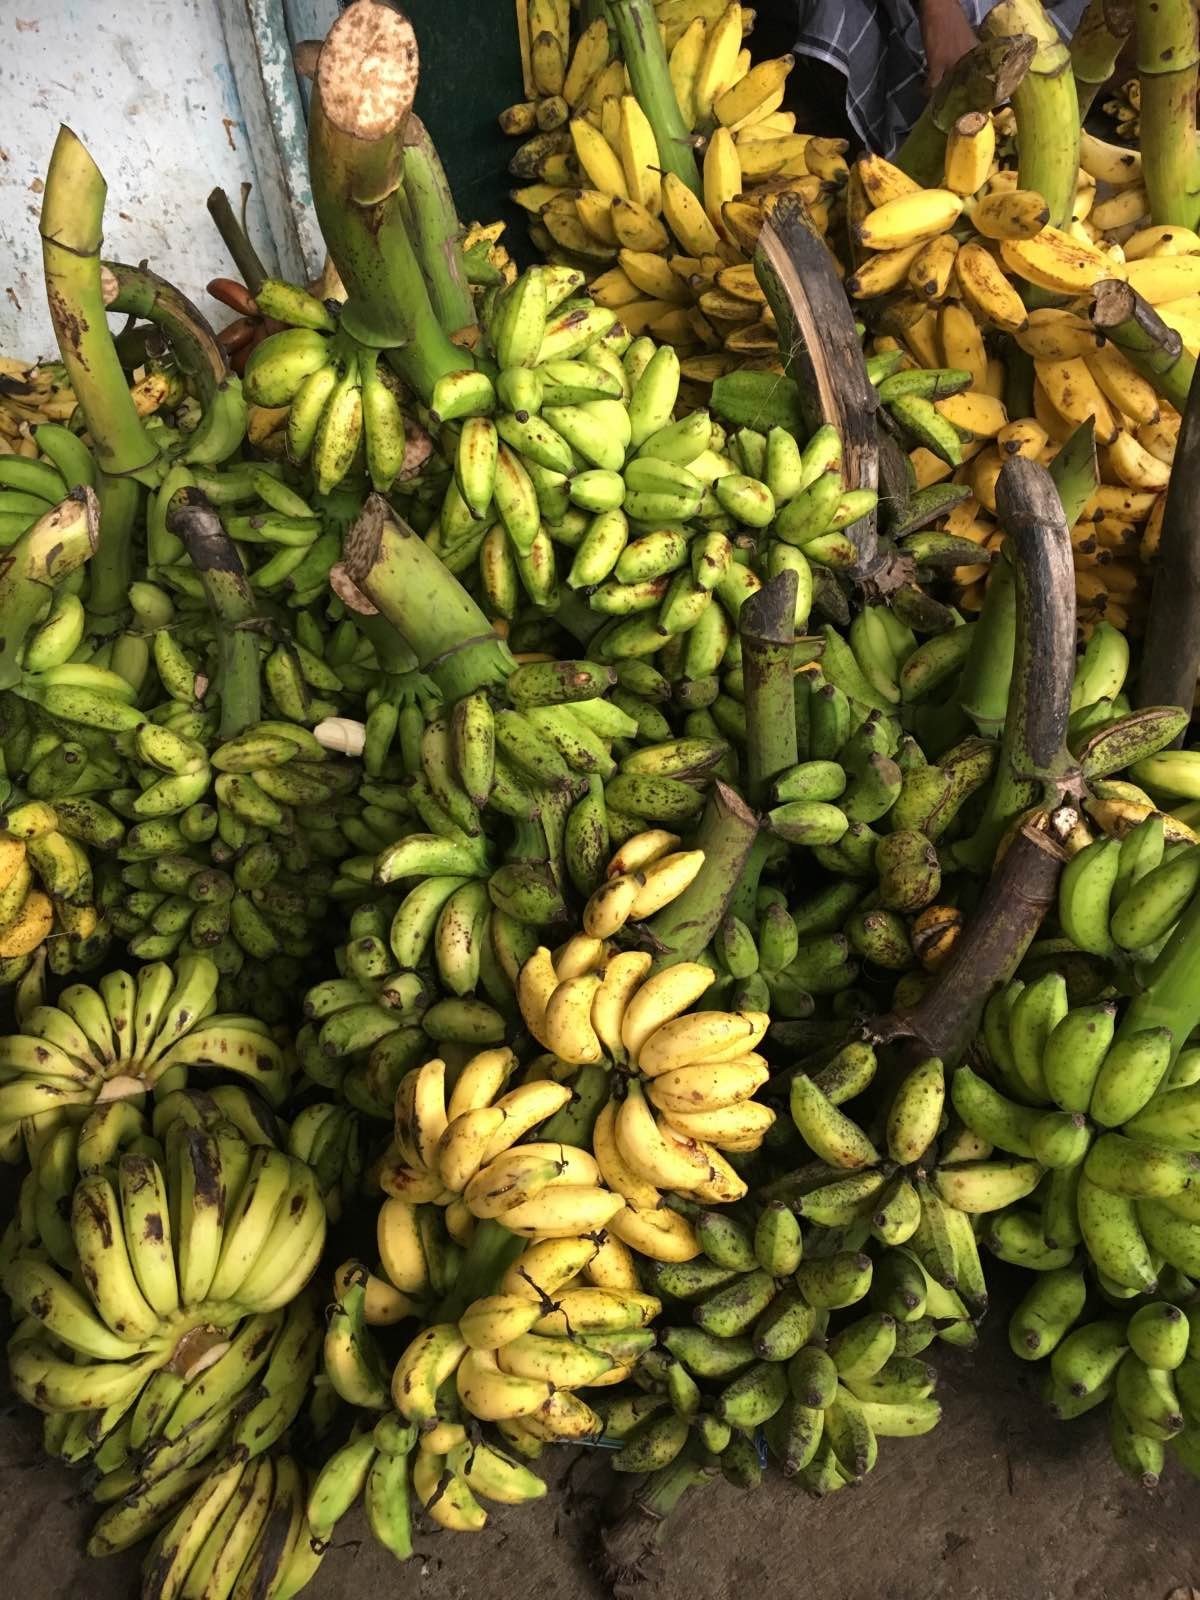 Inside the Banana Market